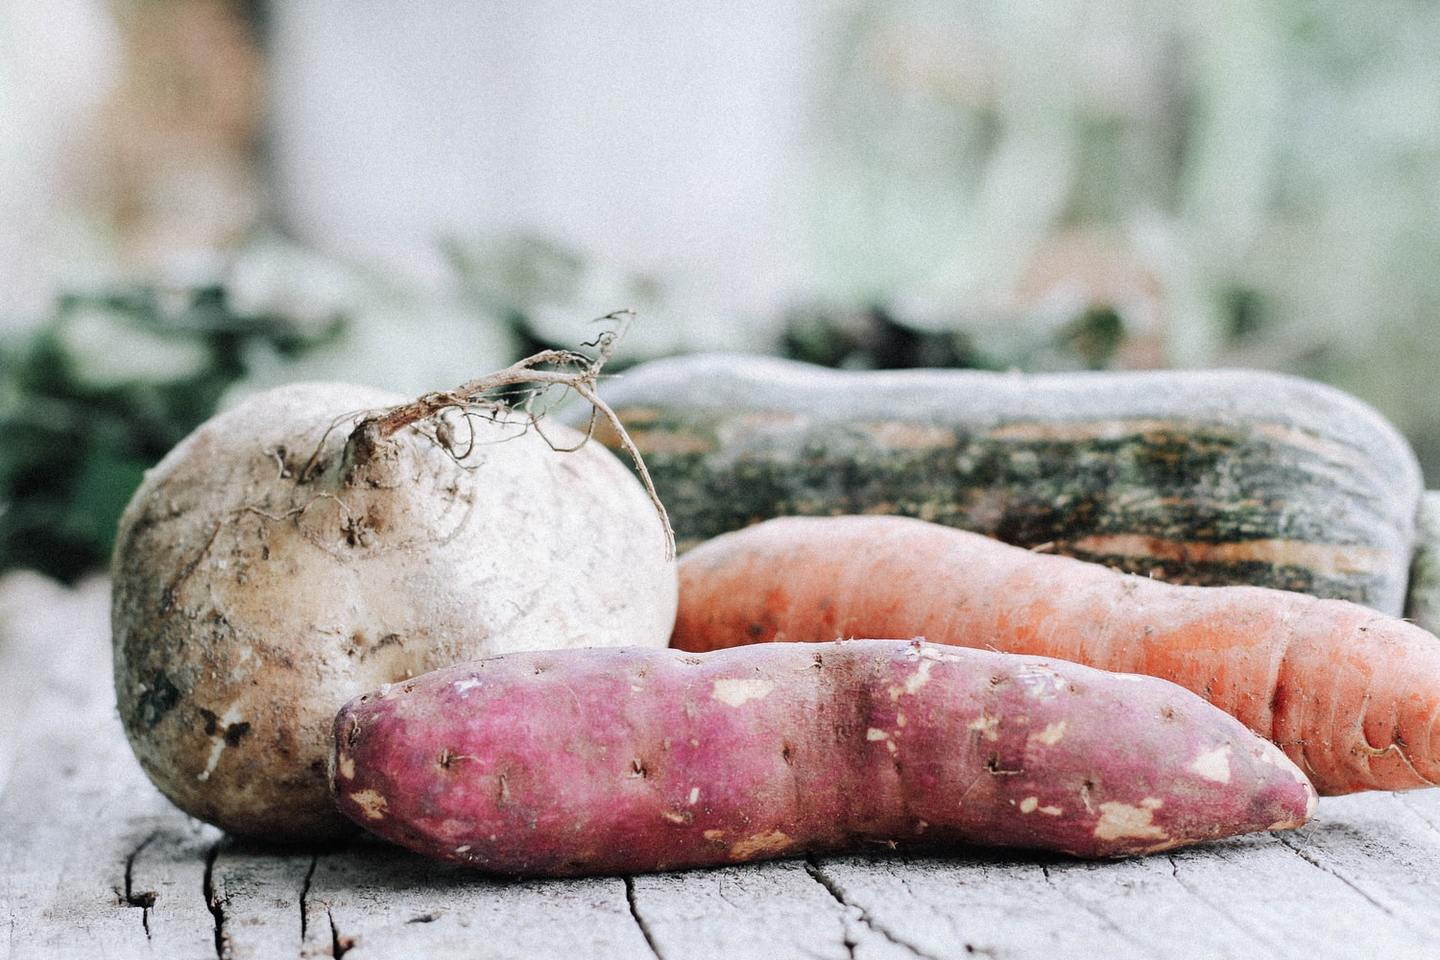 Sweet potato and other root vegetables